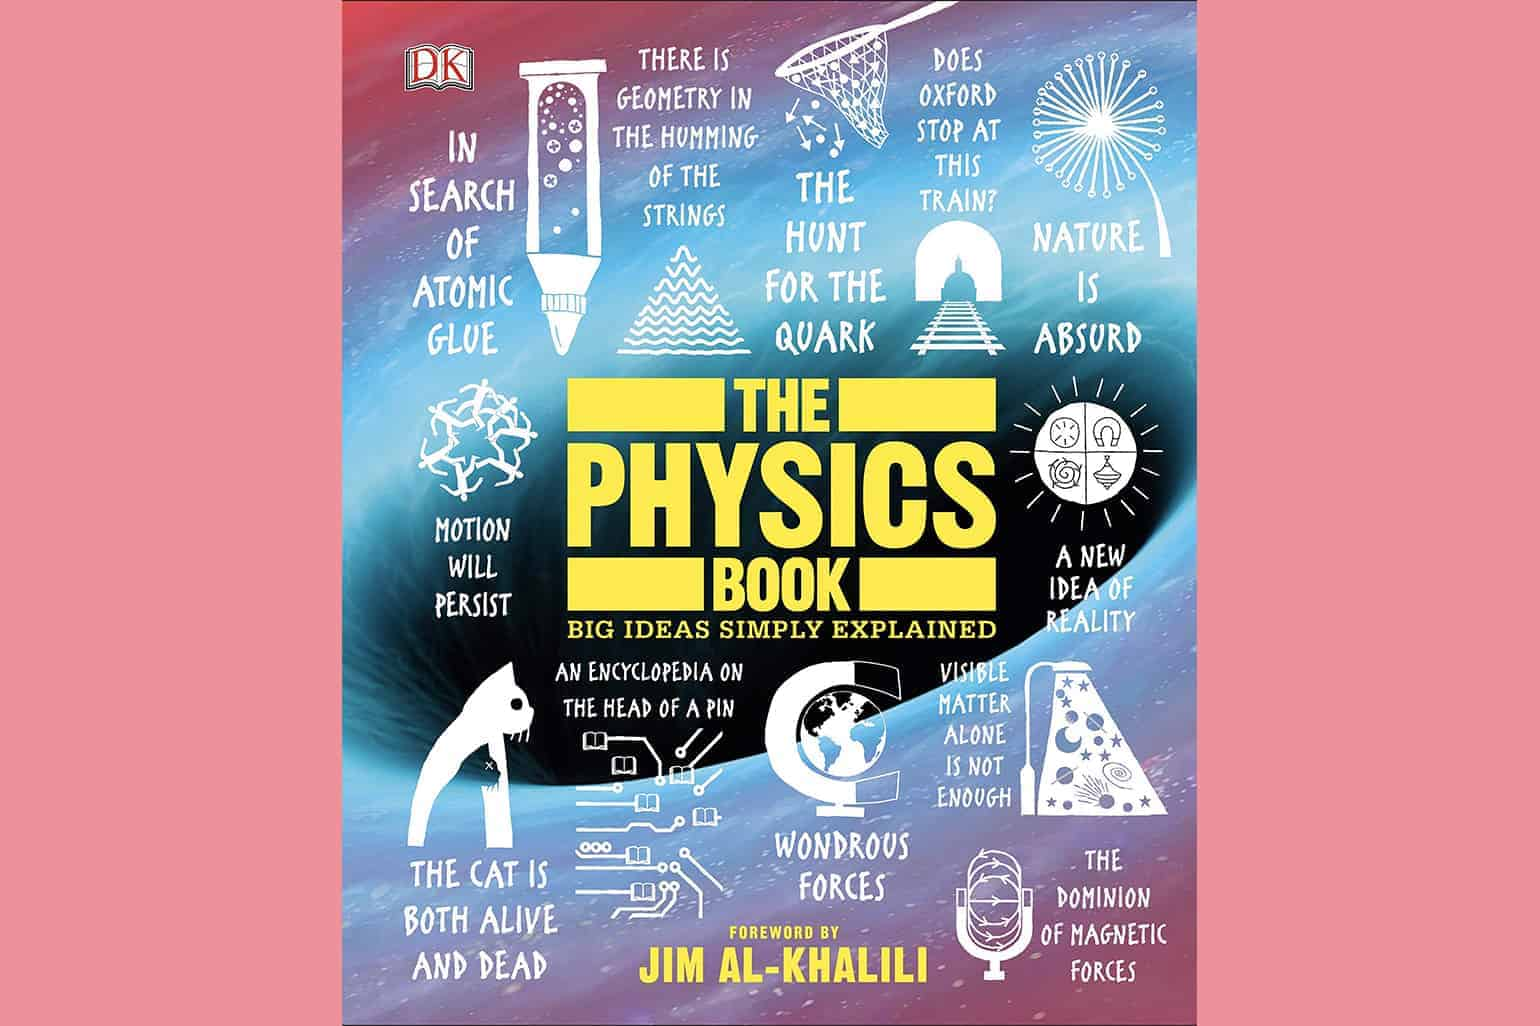 The Physics Book Big Ideas Simply Explained By DK And Jim Al Khalili Foreword